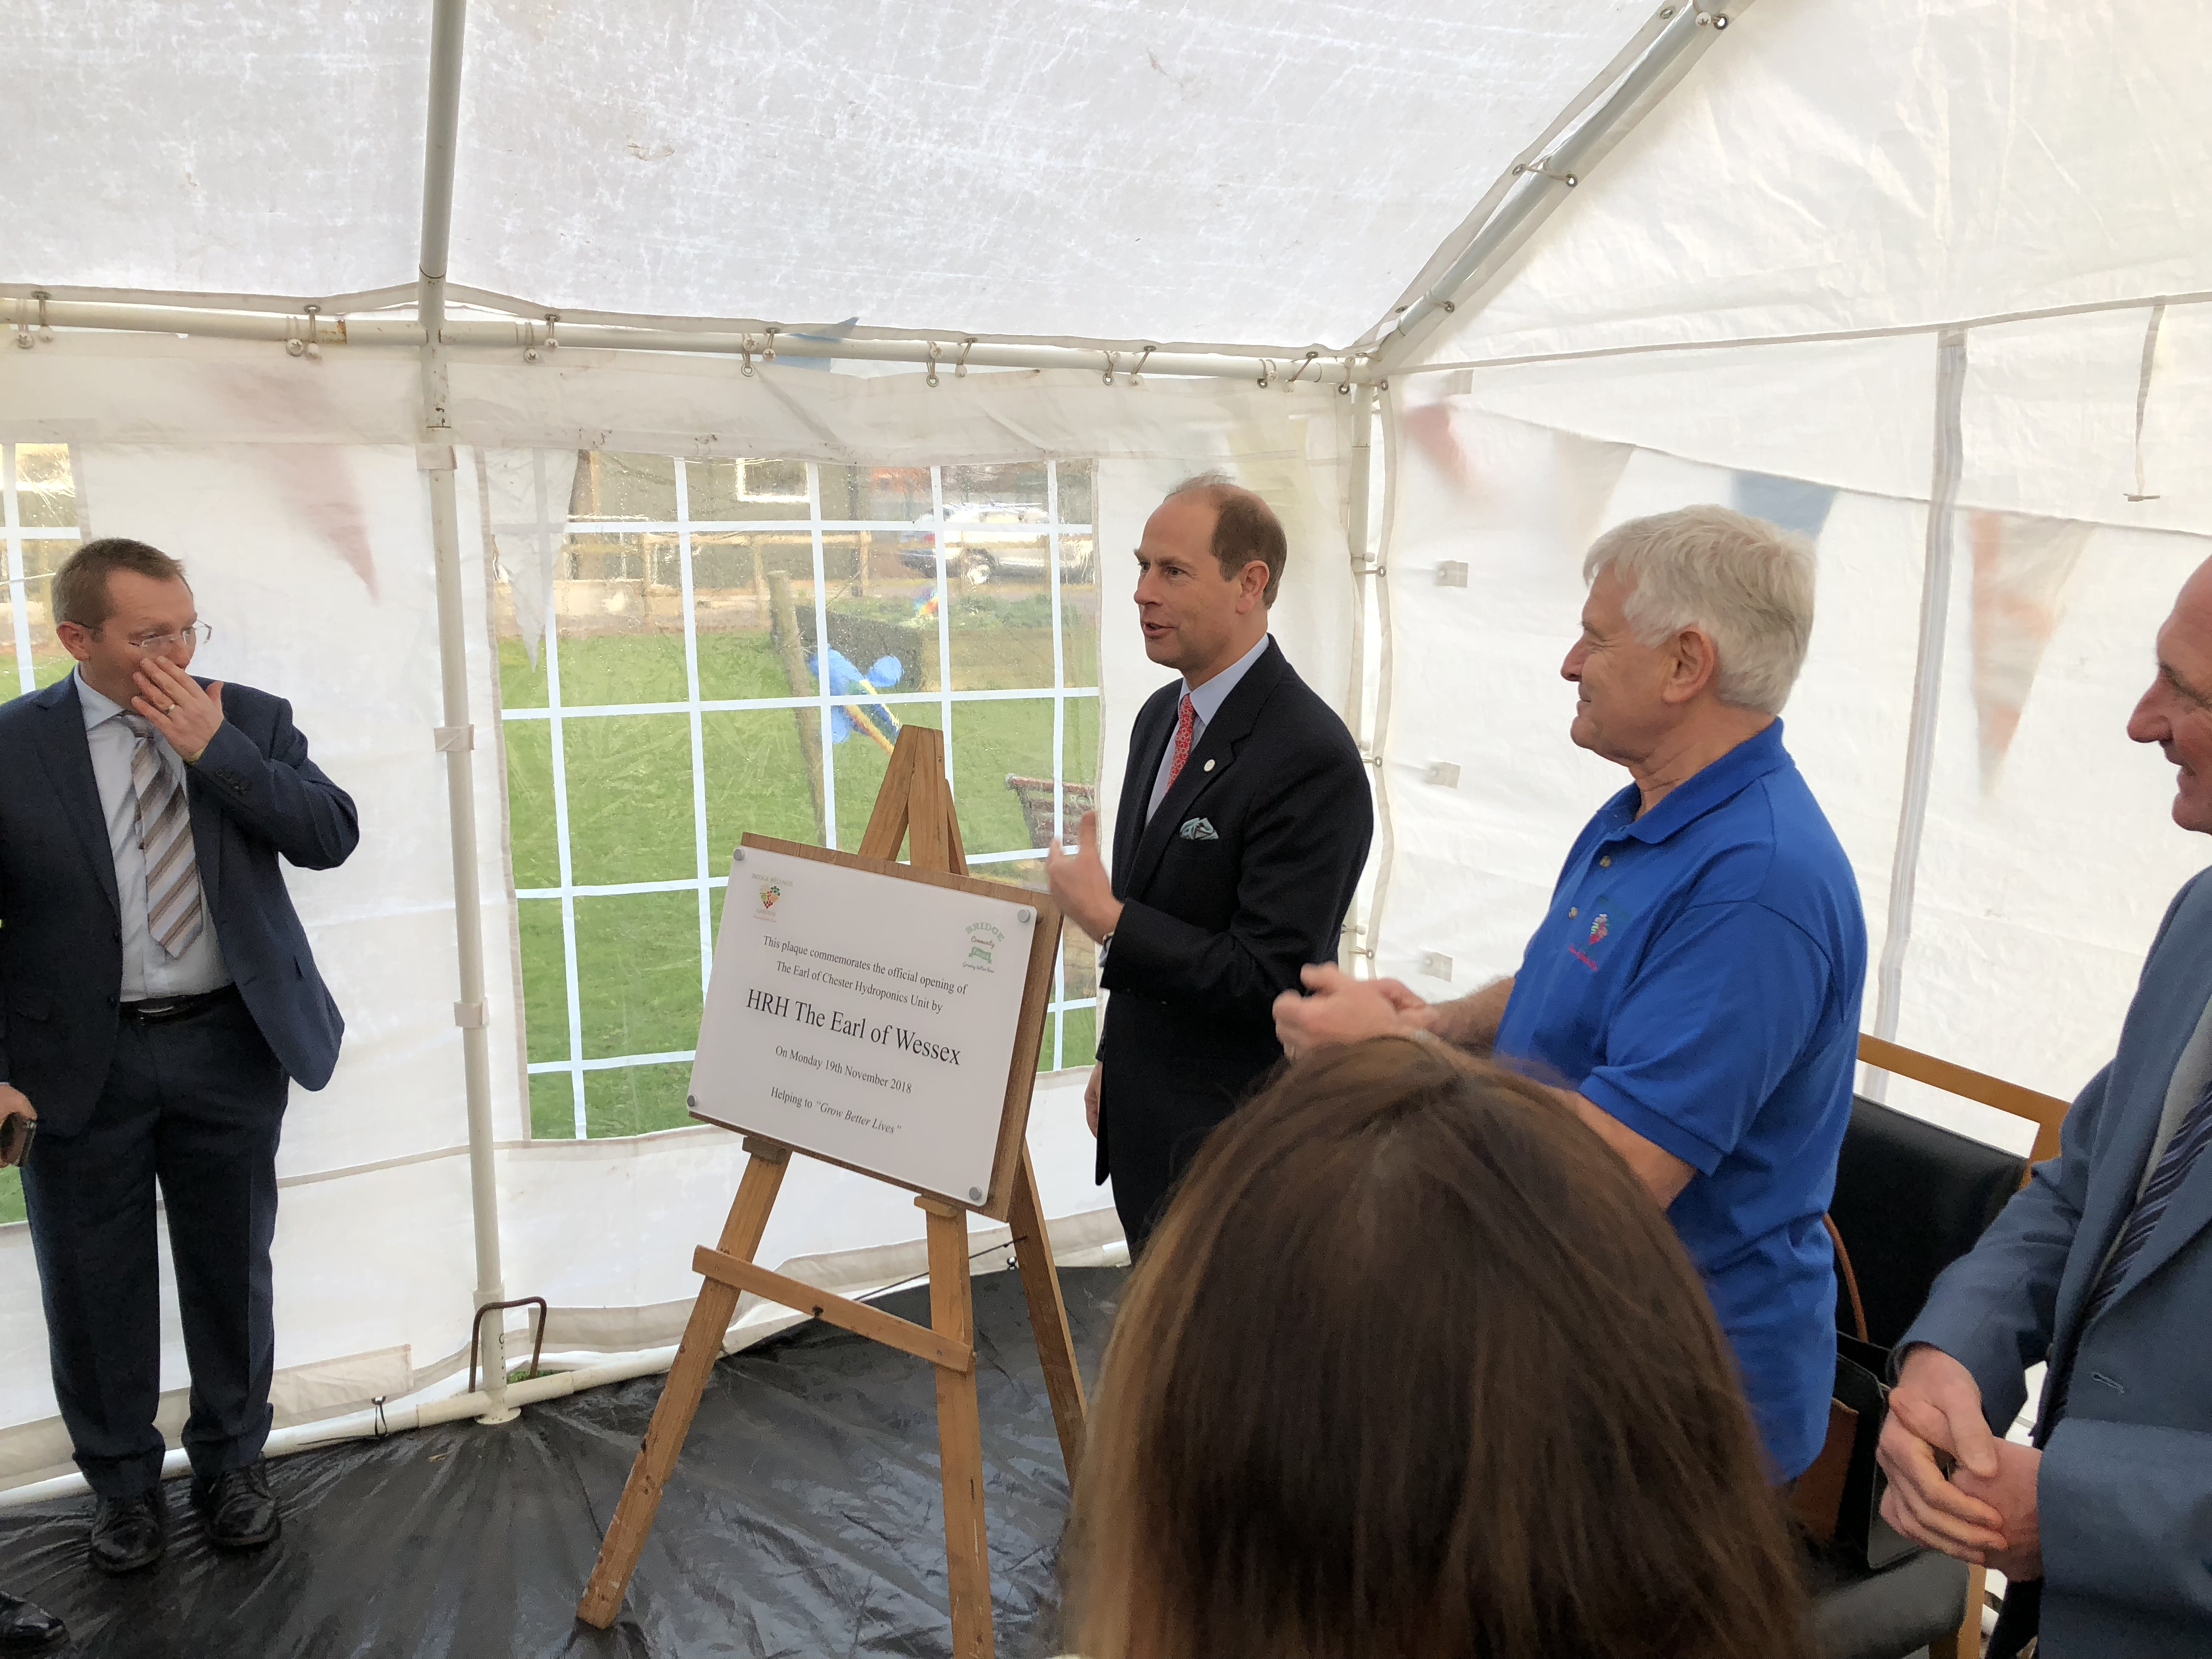 Prince Edward, Earl of Wessex at the Bridge Community Farm opening of their new Hydroponics Unit